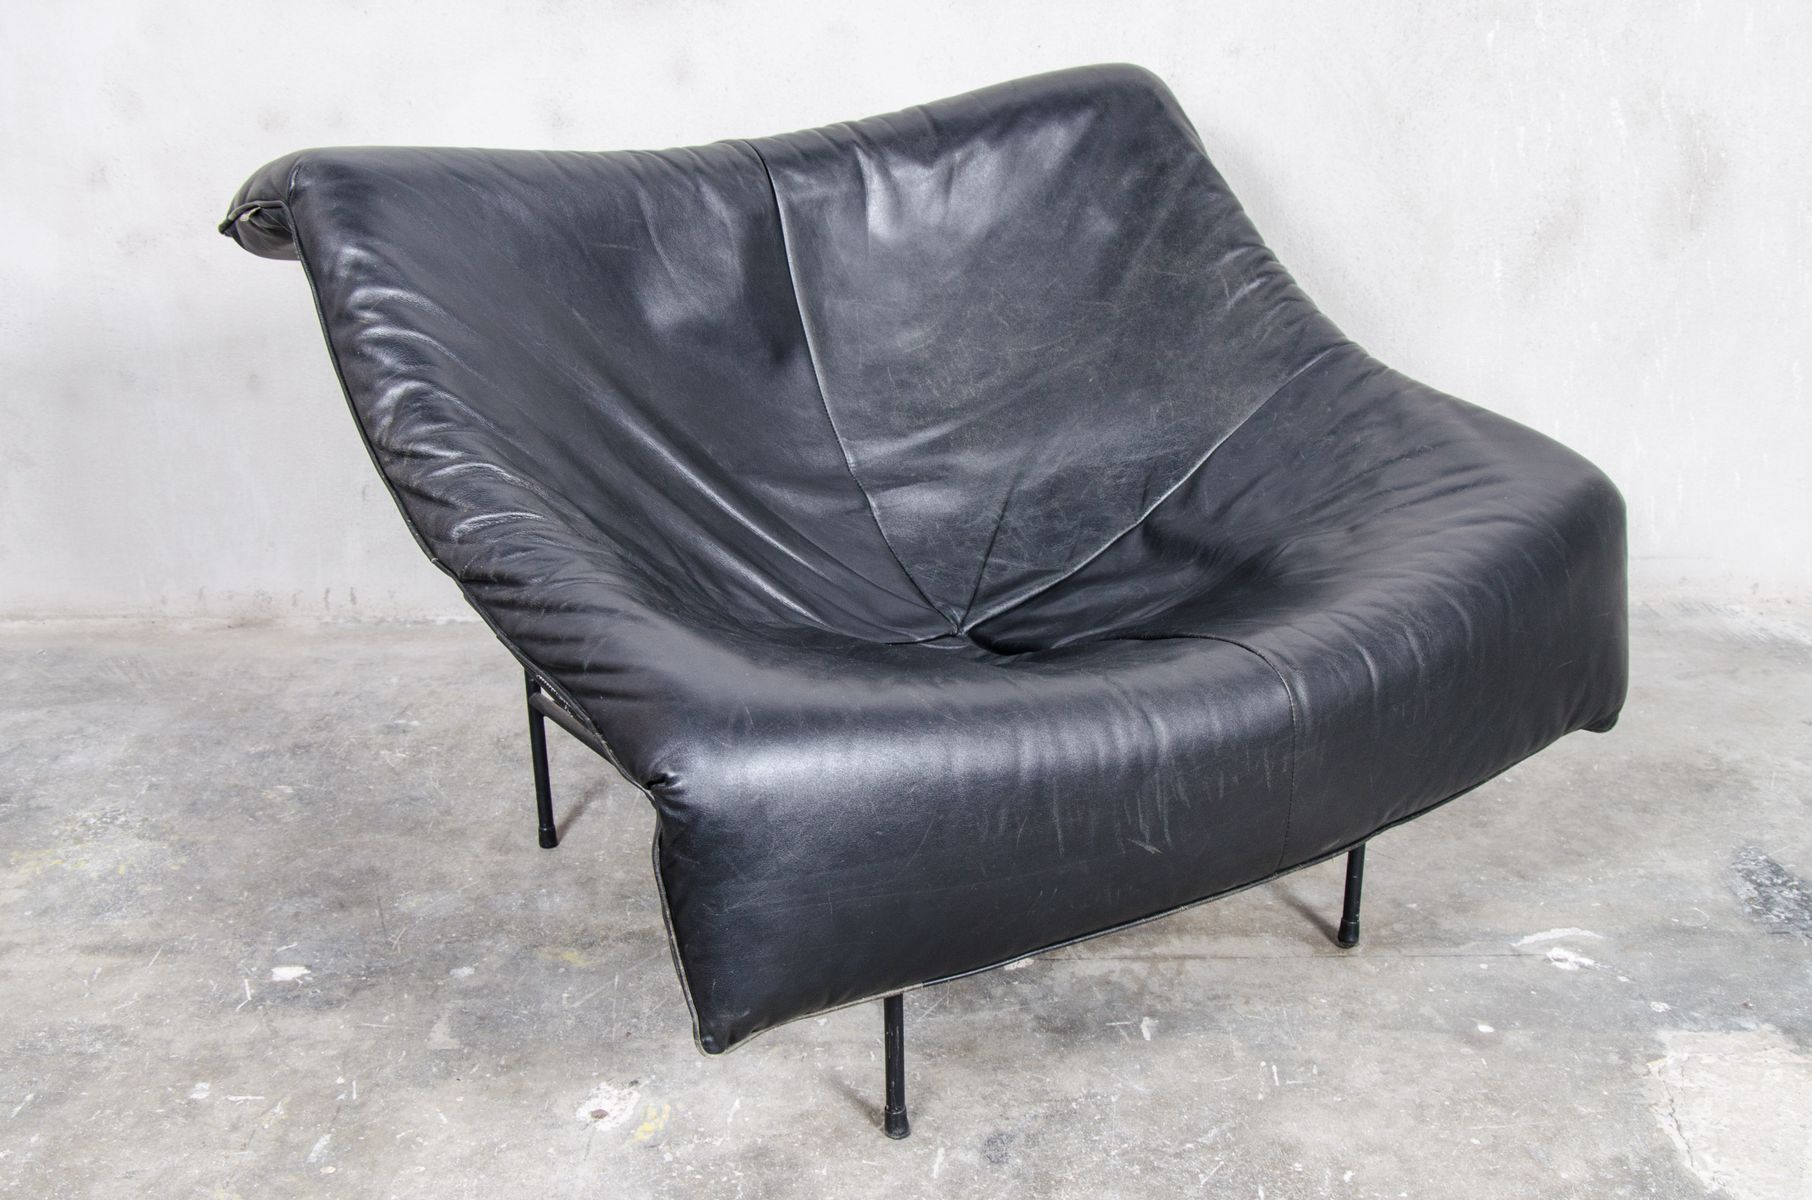 butterfly lounge chair home goods leather swivel vintage by gerard van den berg for